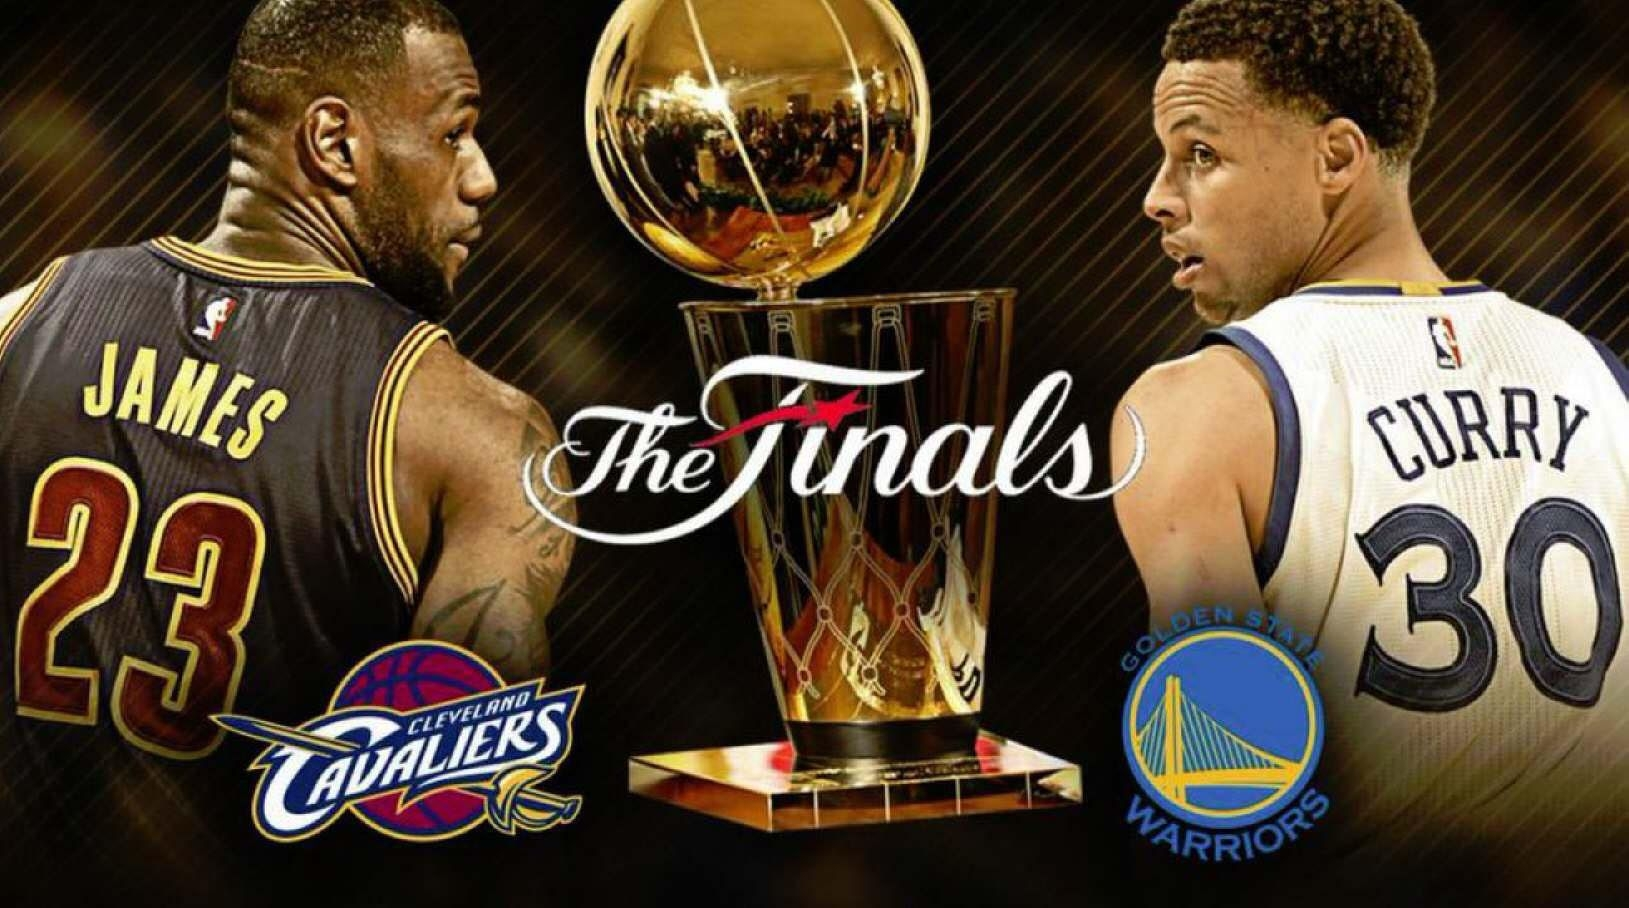 Warriors vs Cavaliers (@warriorsvcavaliers) Cover Image